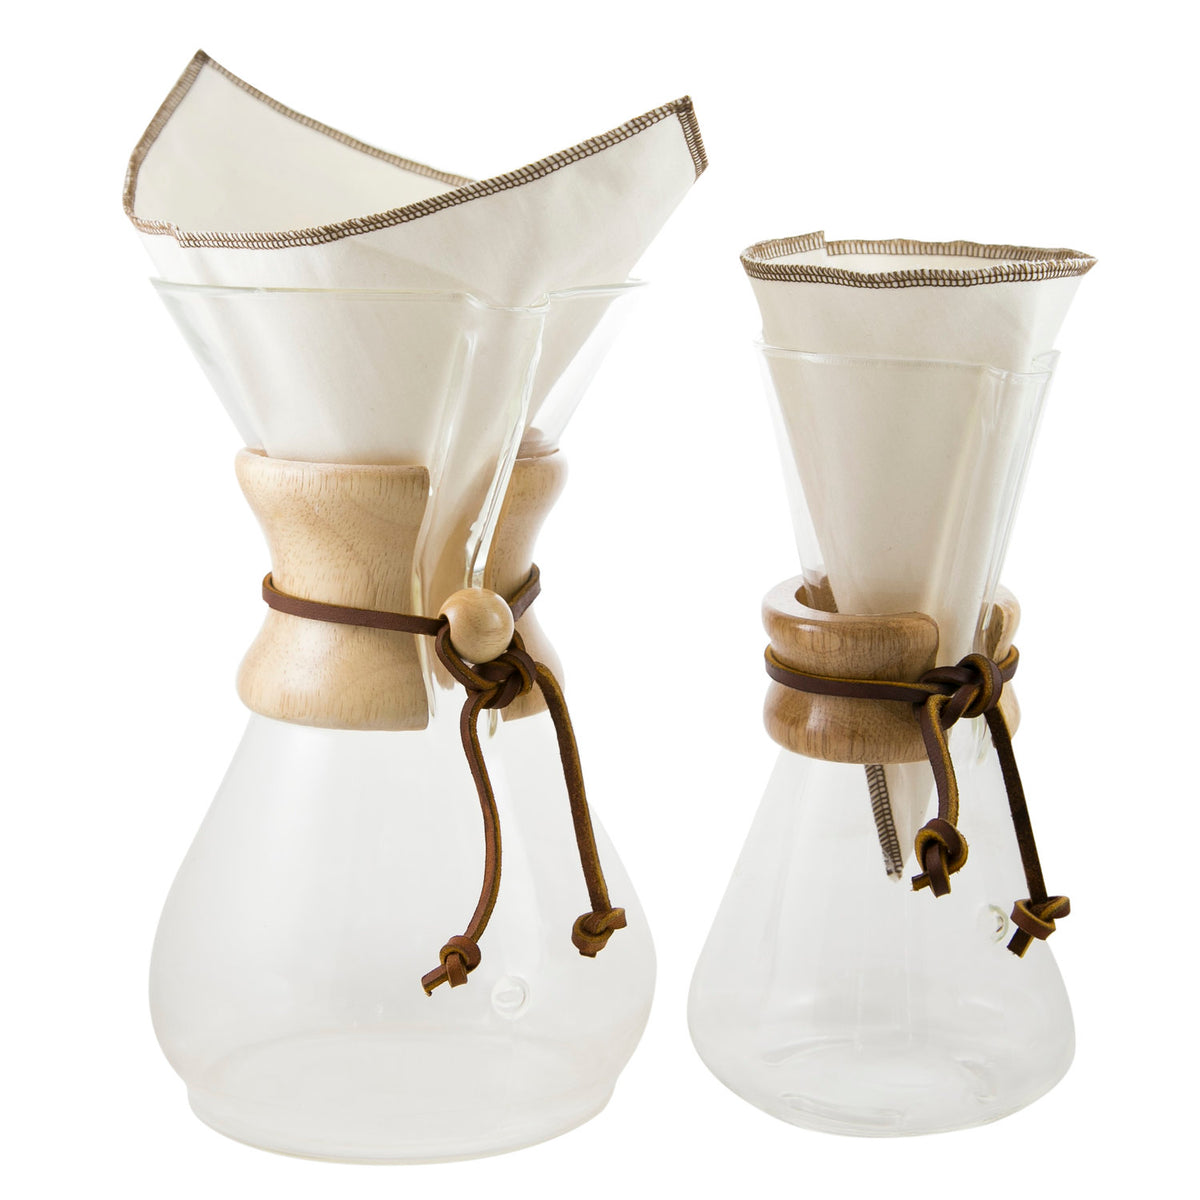 Chemex® Style - CoffeeSock Reusable Coffee Filters